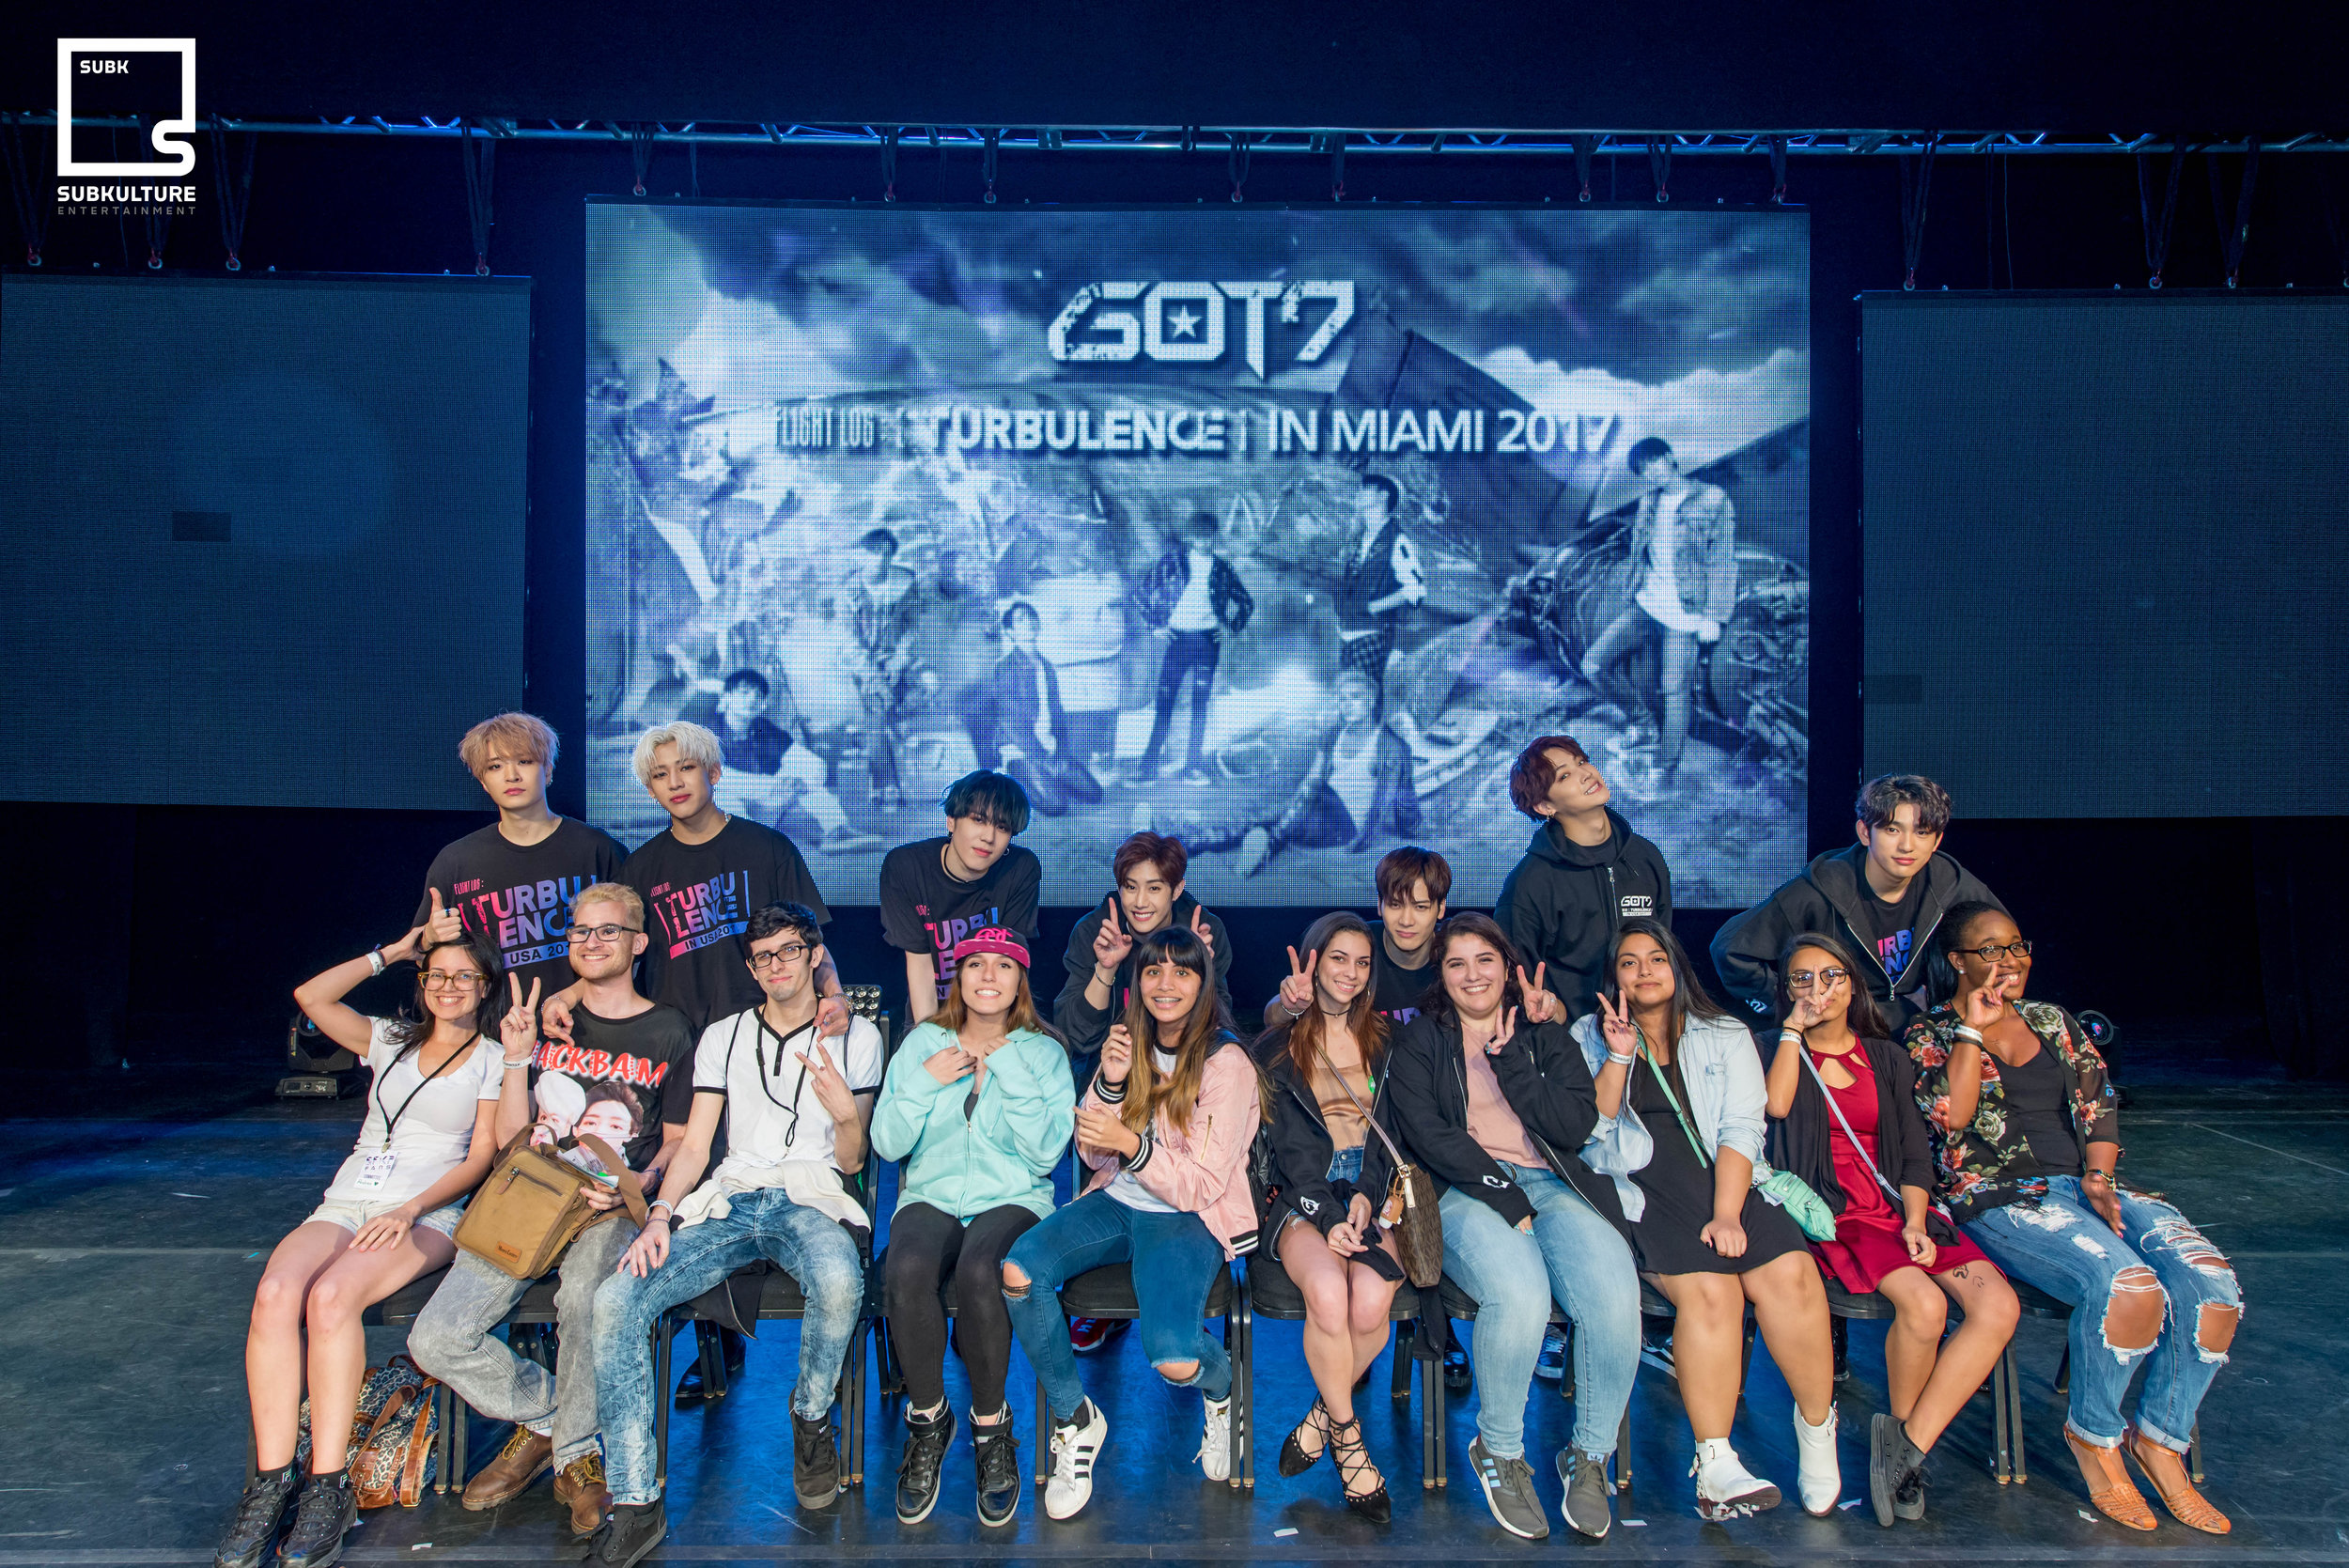 GOT7 Fan Photos Miami -1126 copy.jpg